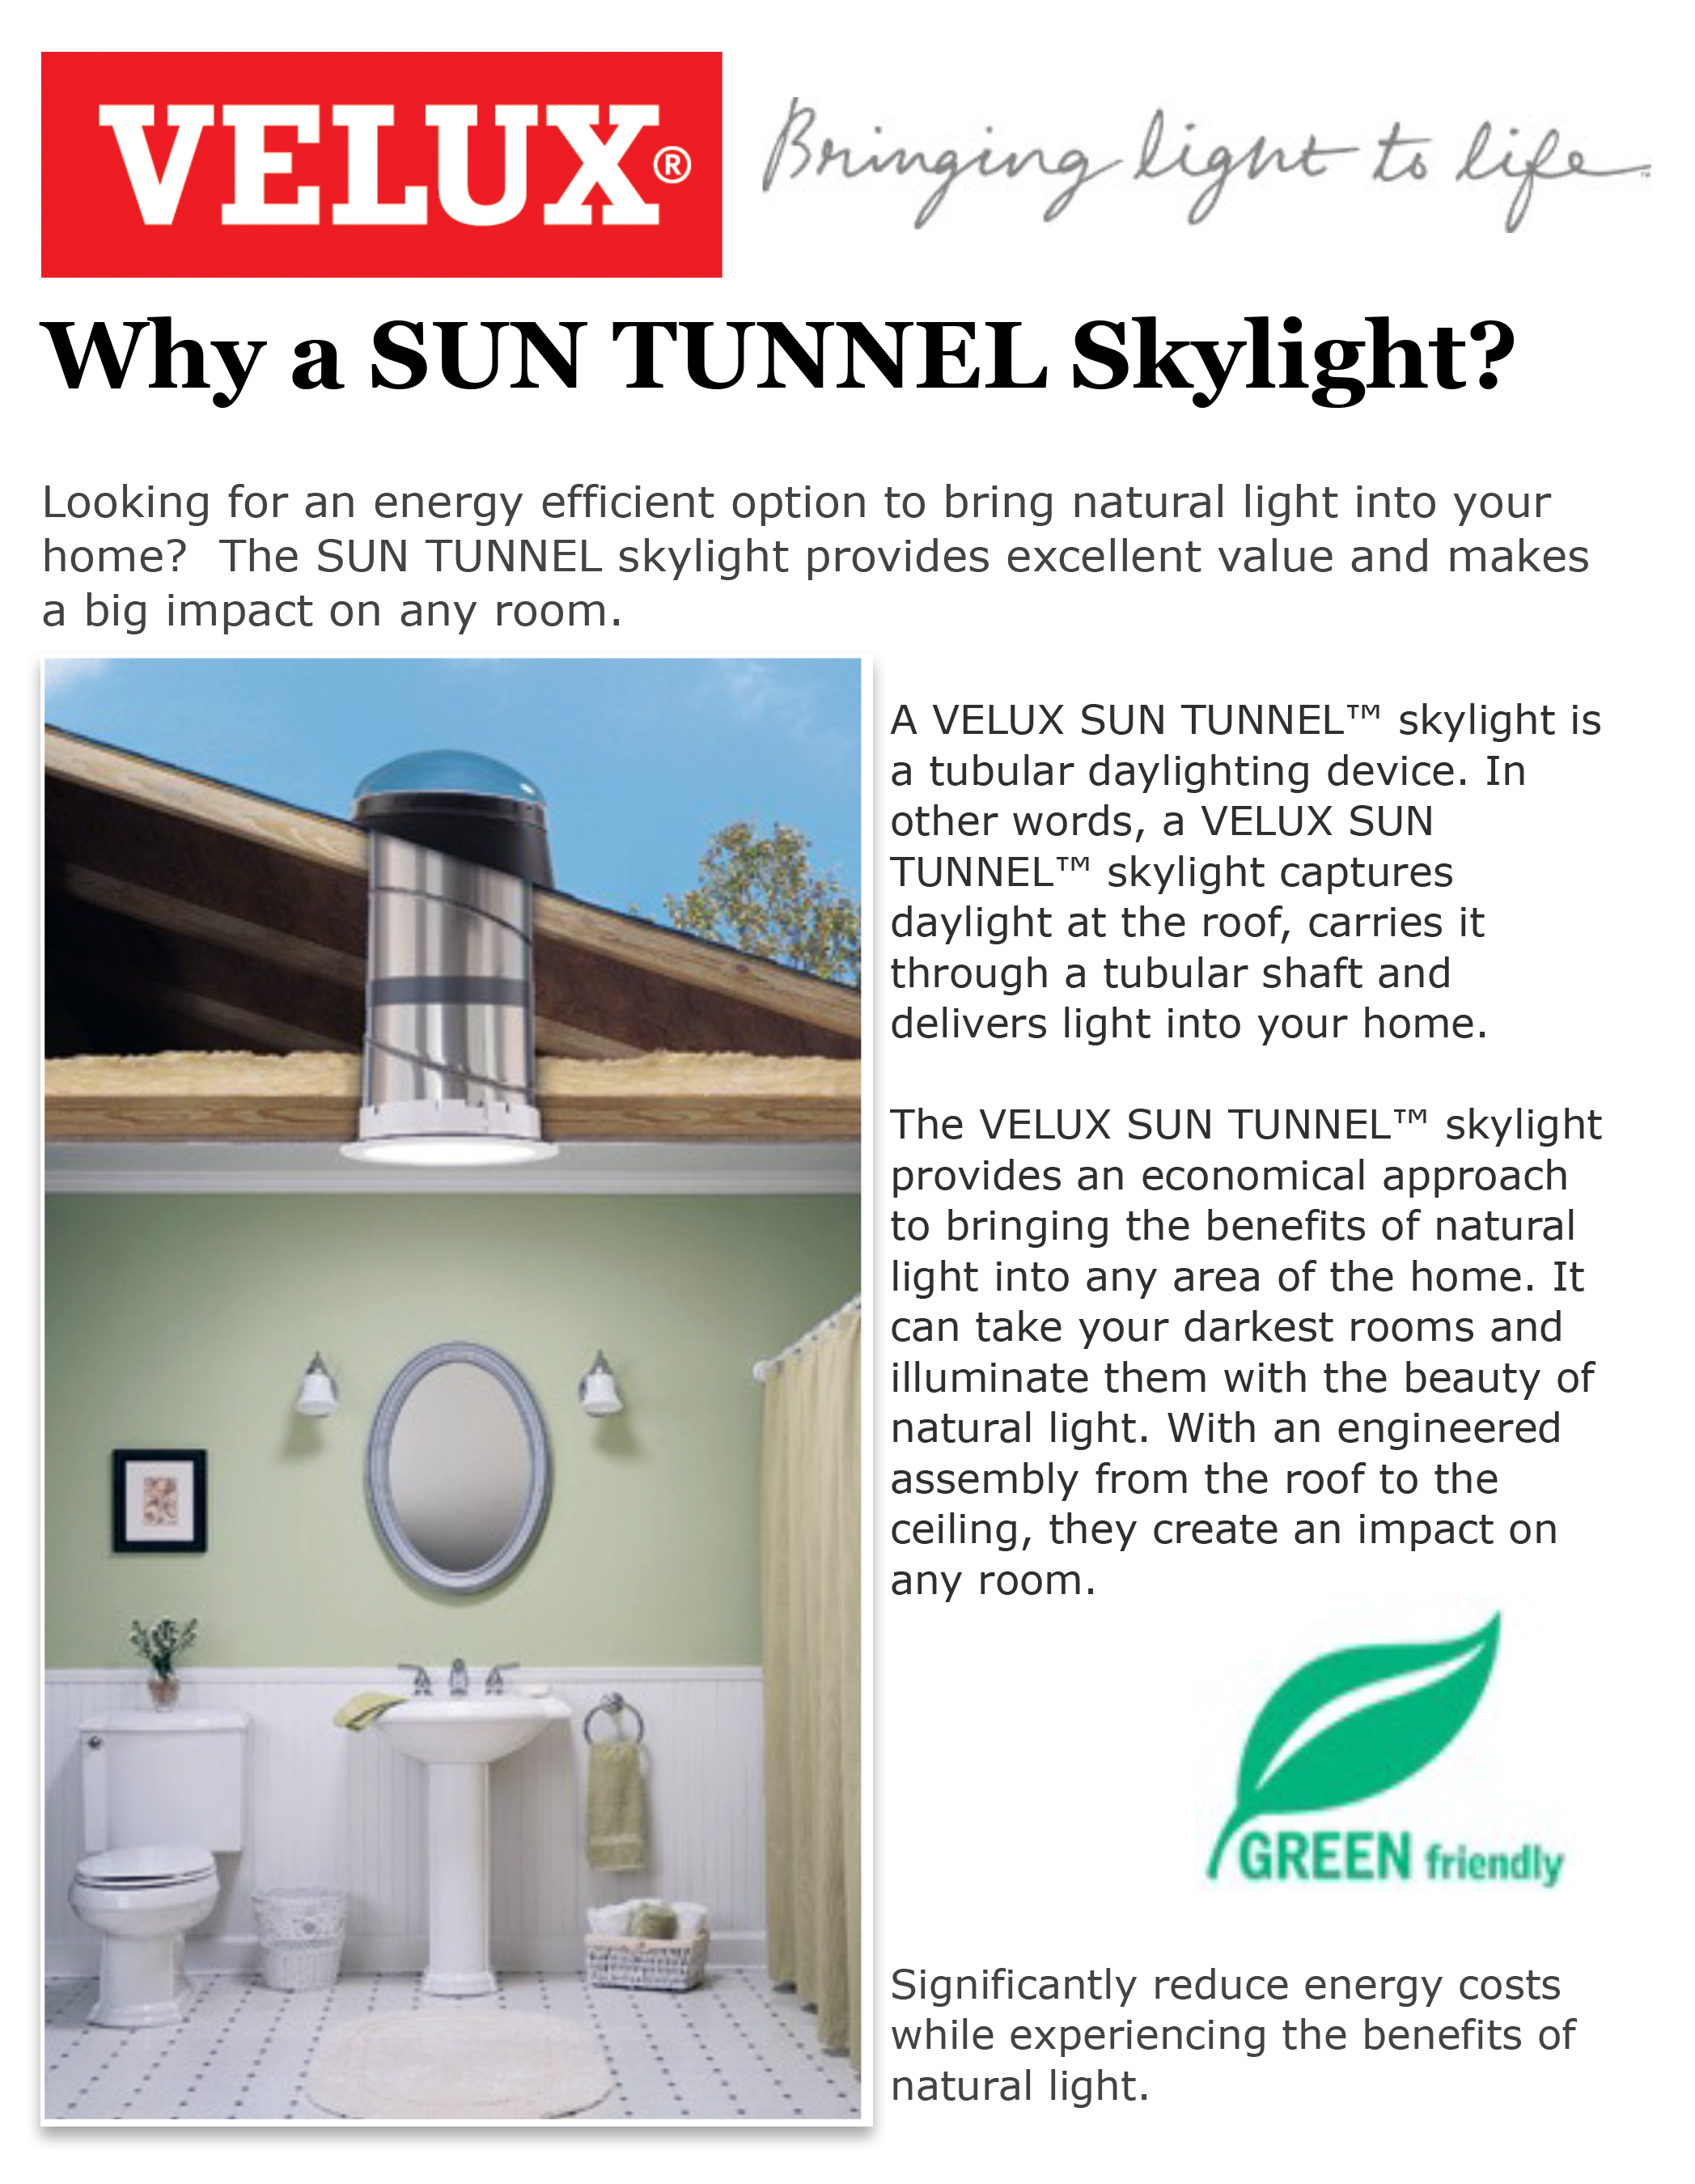 Velux SUN TUNNEL Skylights